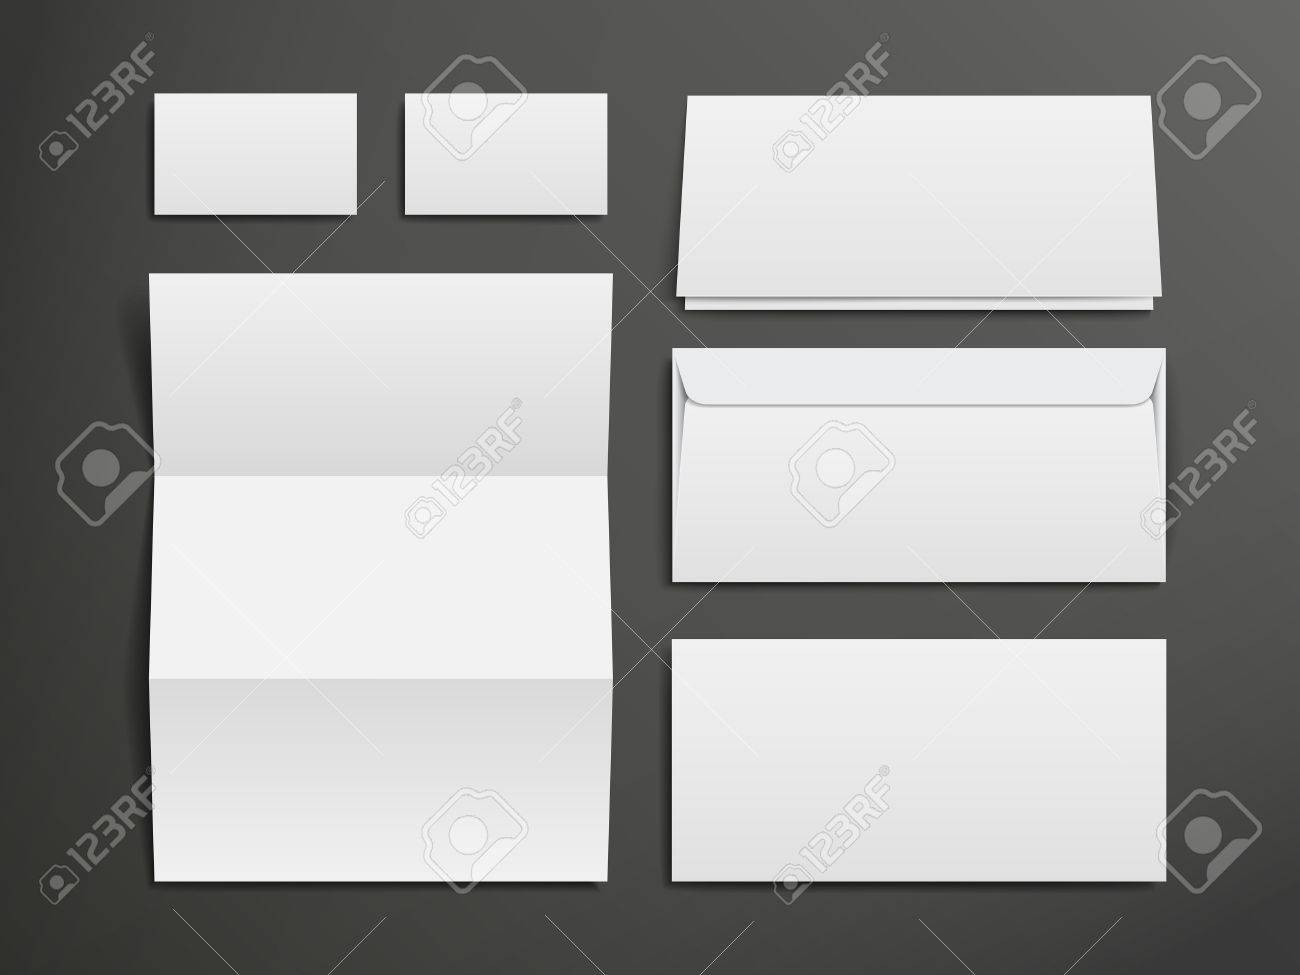 Blank envelopes business card and folder over black background blank envelopes business card and folder over black background stock vector 33567719 reheart Choice Image